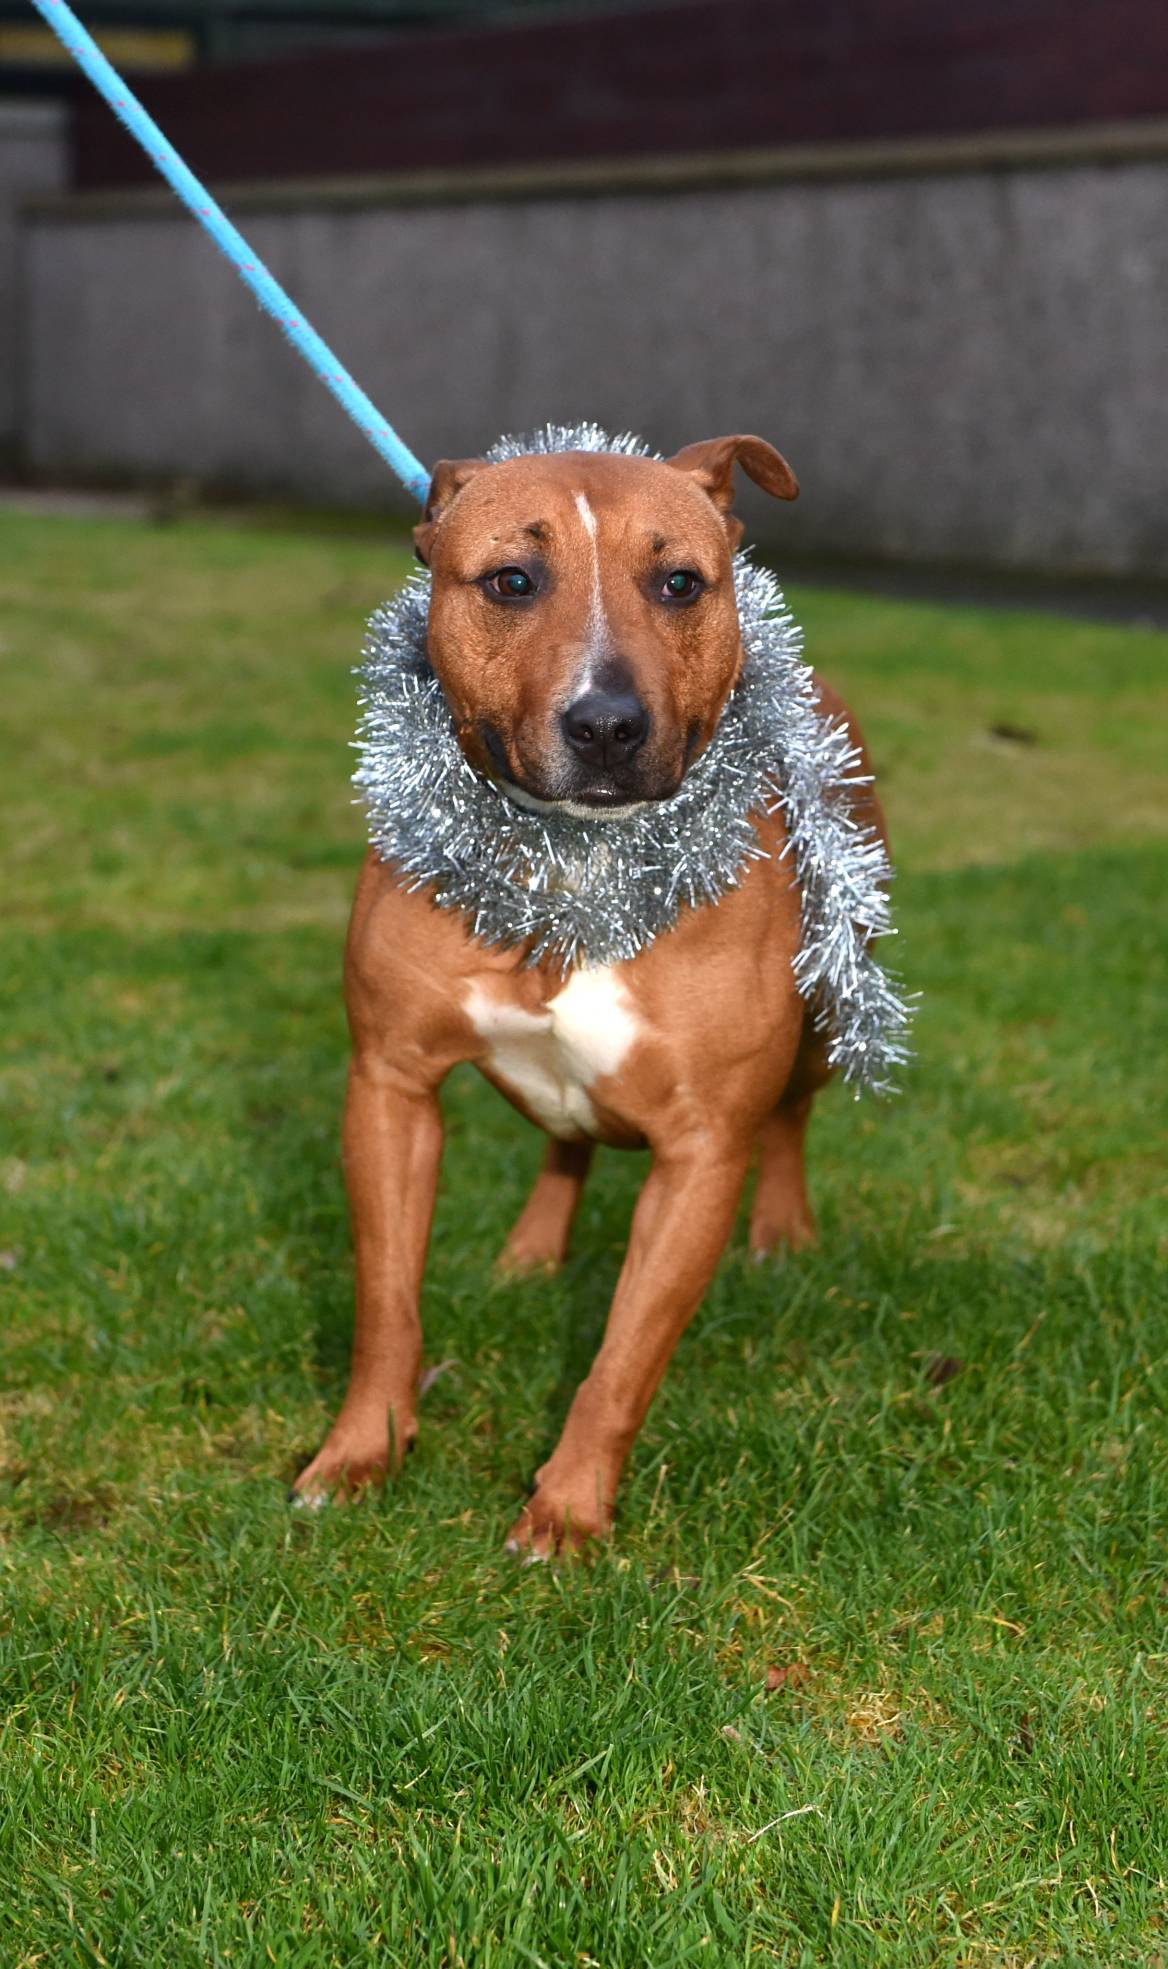 Two-year-old Kia loves her walks so will be looking for an owner with the time to give her the exercise she needs. Although she is a bit shy at first, she is very sweet once she knows you but wouldn't be suitable for a home with other pets or children.